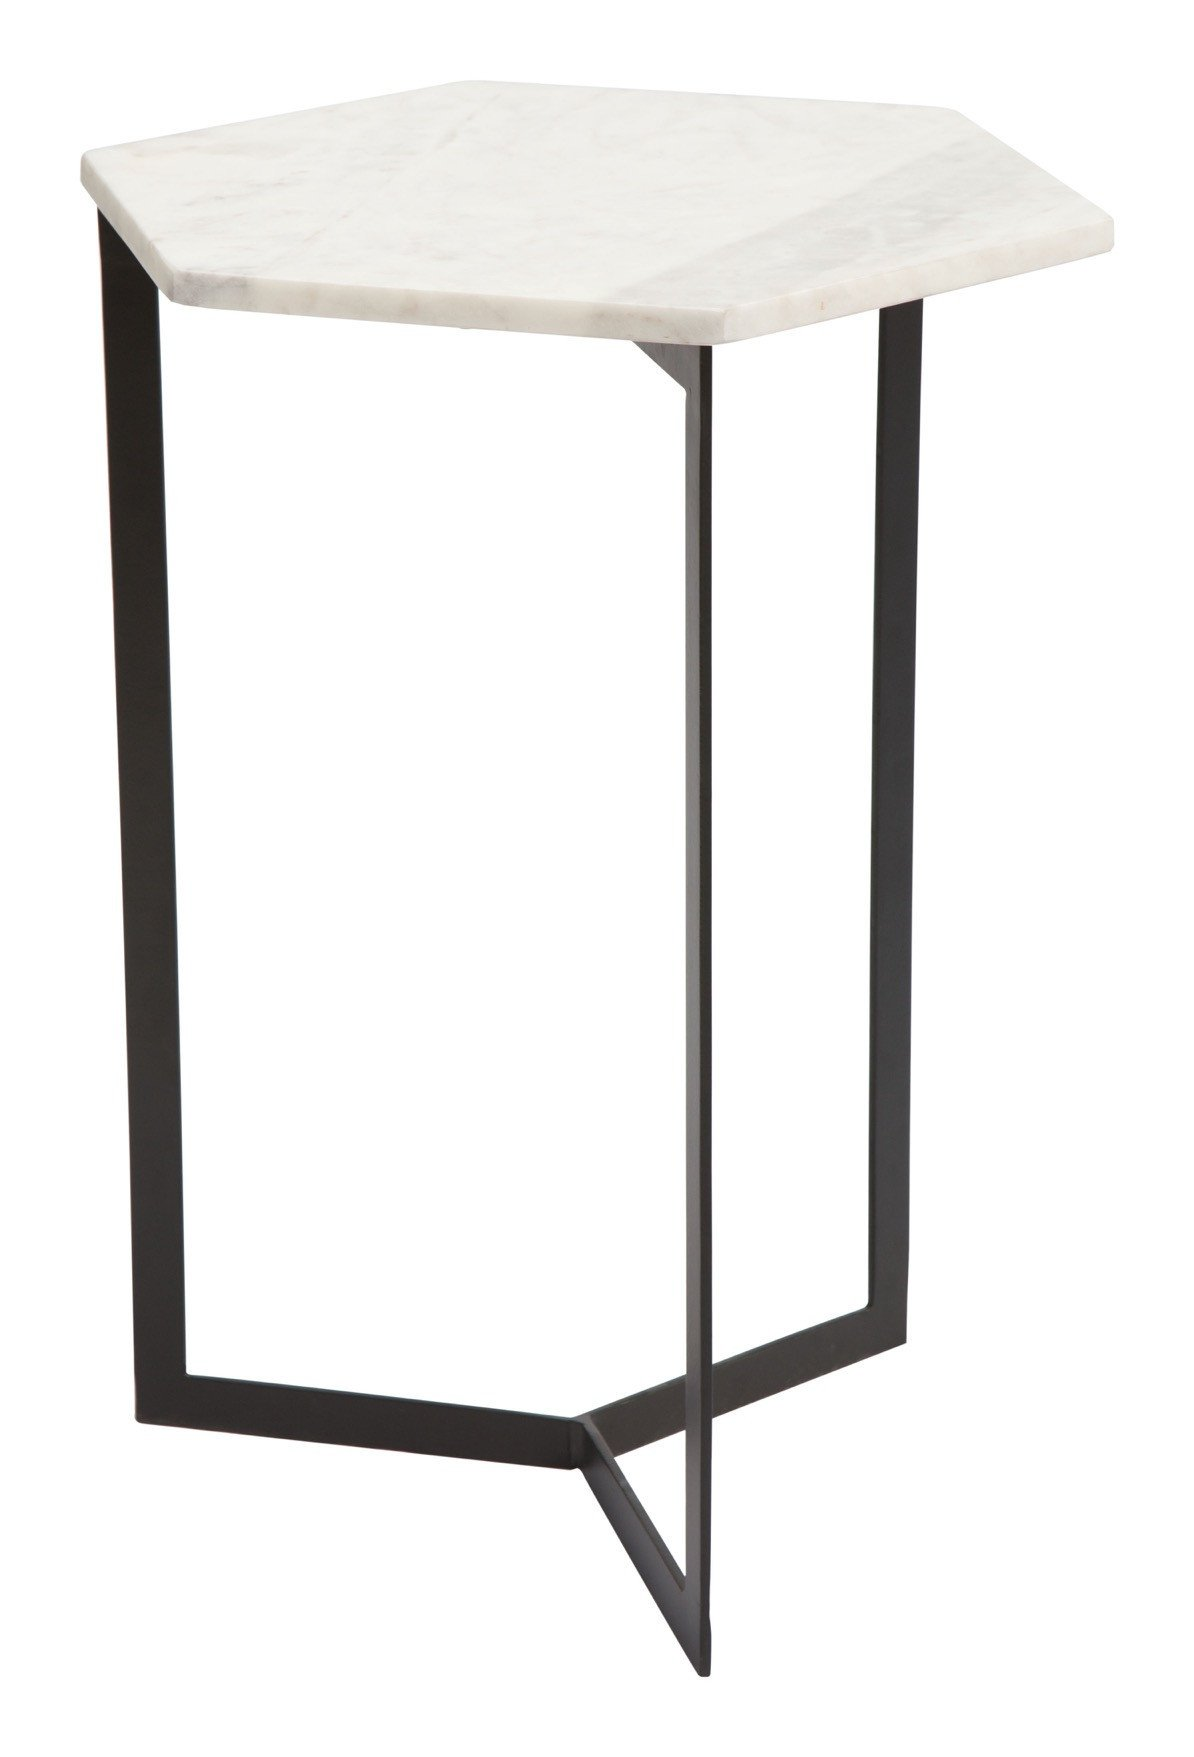 rys accent table with hexagon white faux marble top black iron base side tables alan decor super skinny high wooden stacking and decorations bamboo coffee kitchen chairs leick